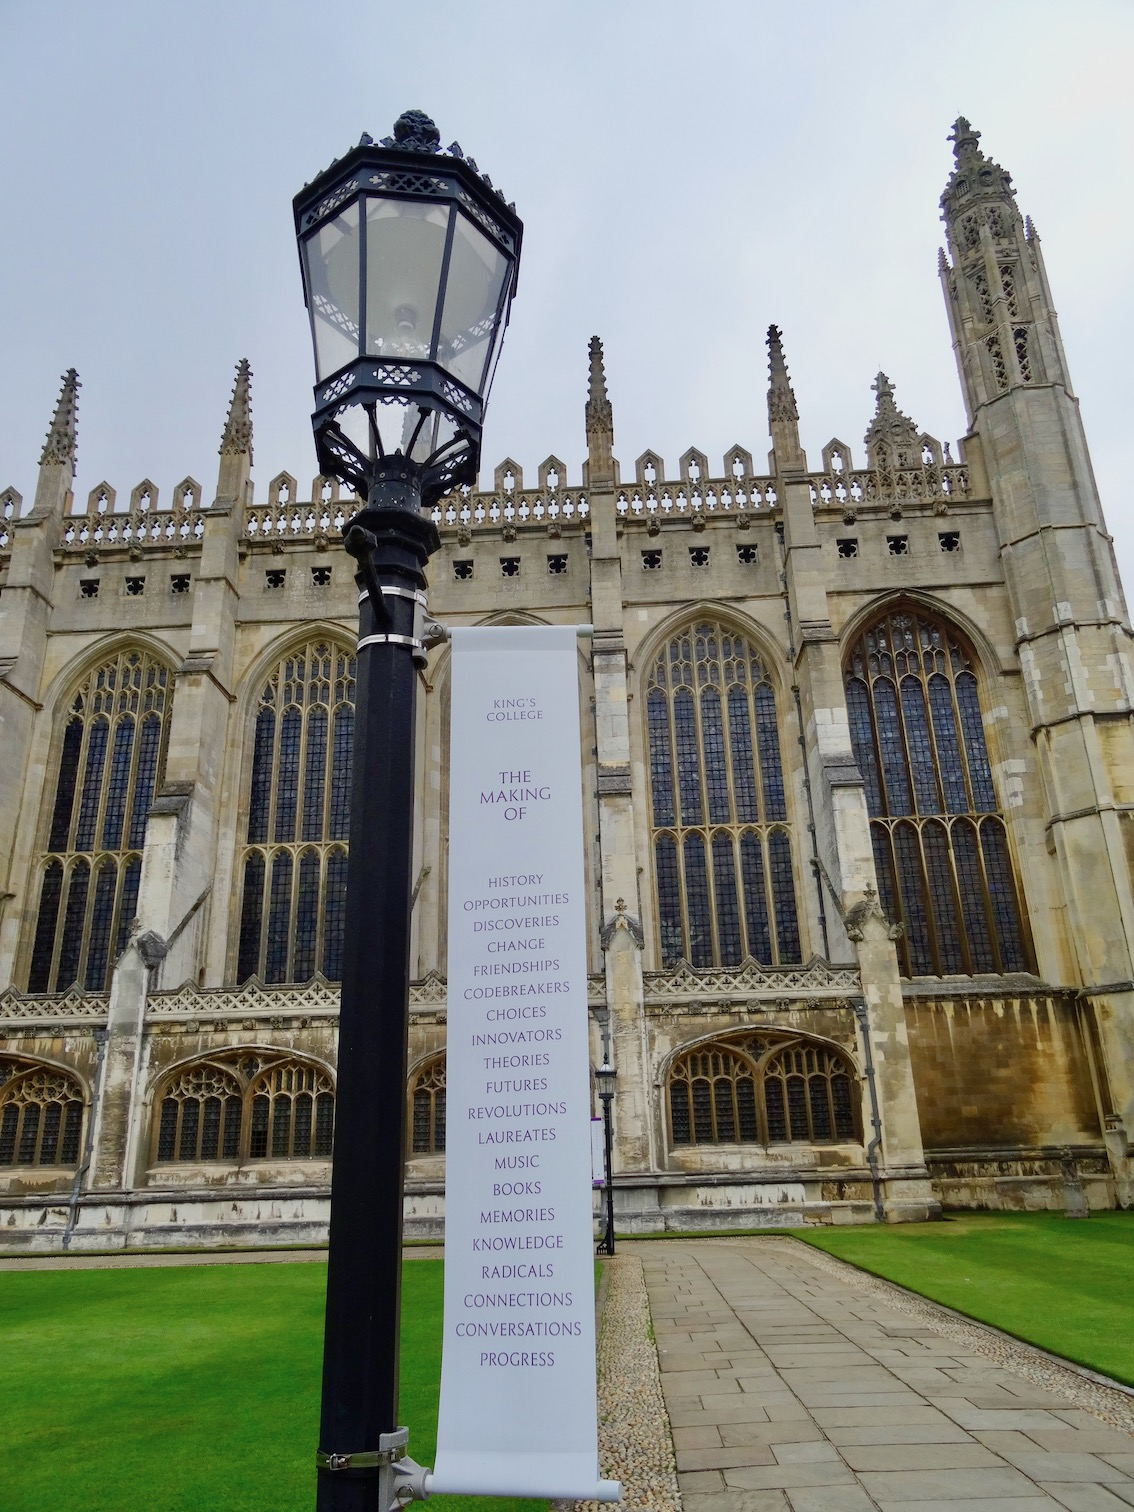 At King's College Cambridge England.